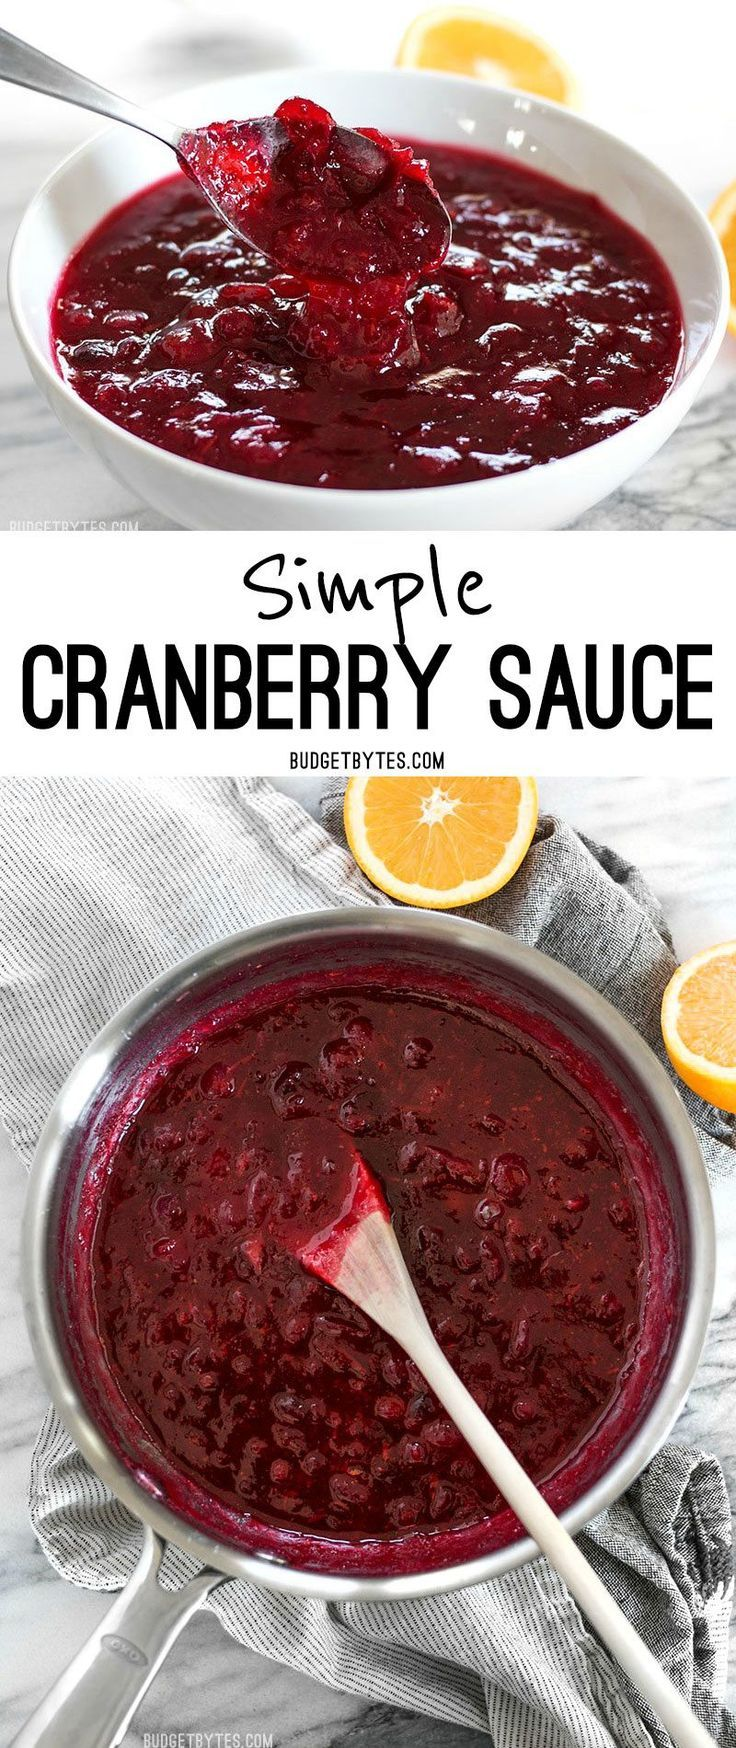 This simple cranberry sauce only requires three ingredients but has enough flavor to add excitement to your holiday meal. @budgetbytes